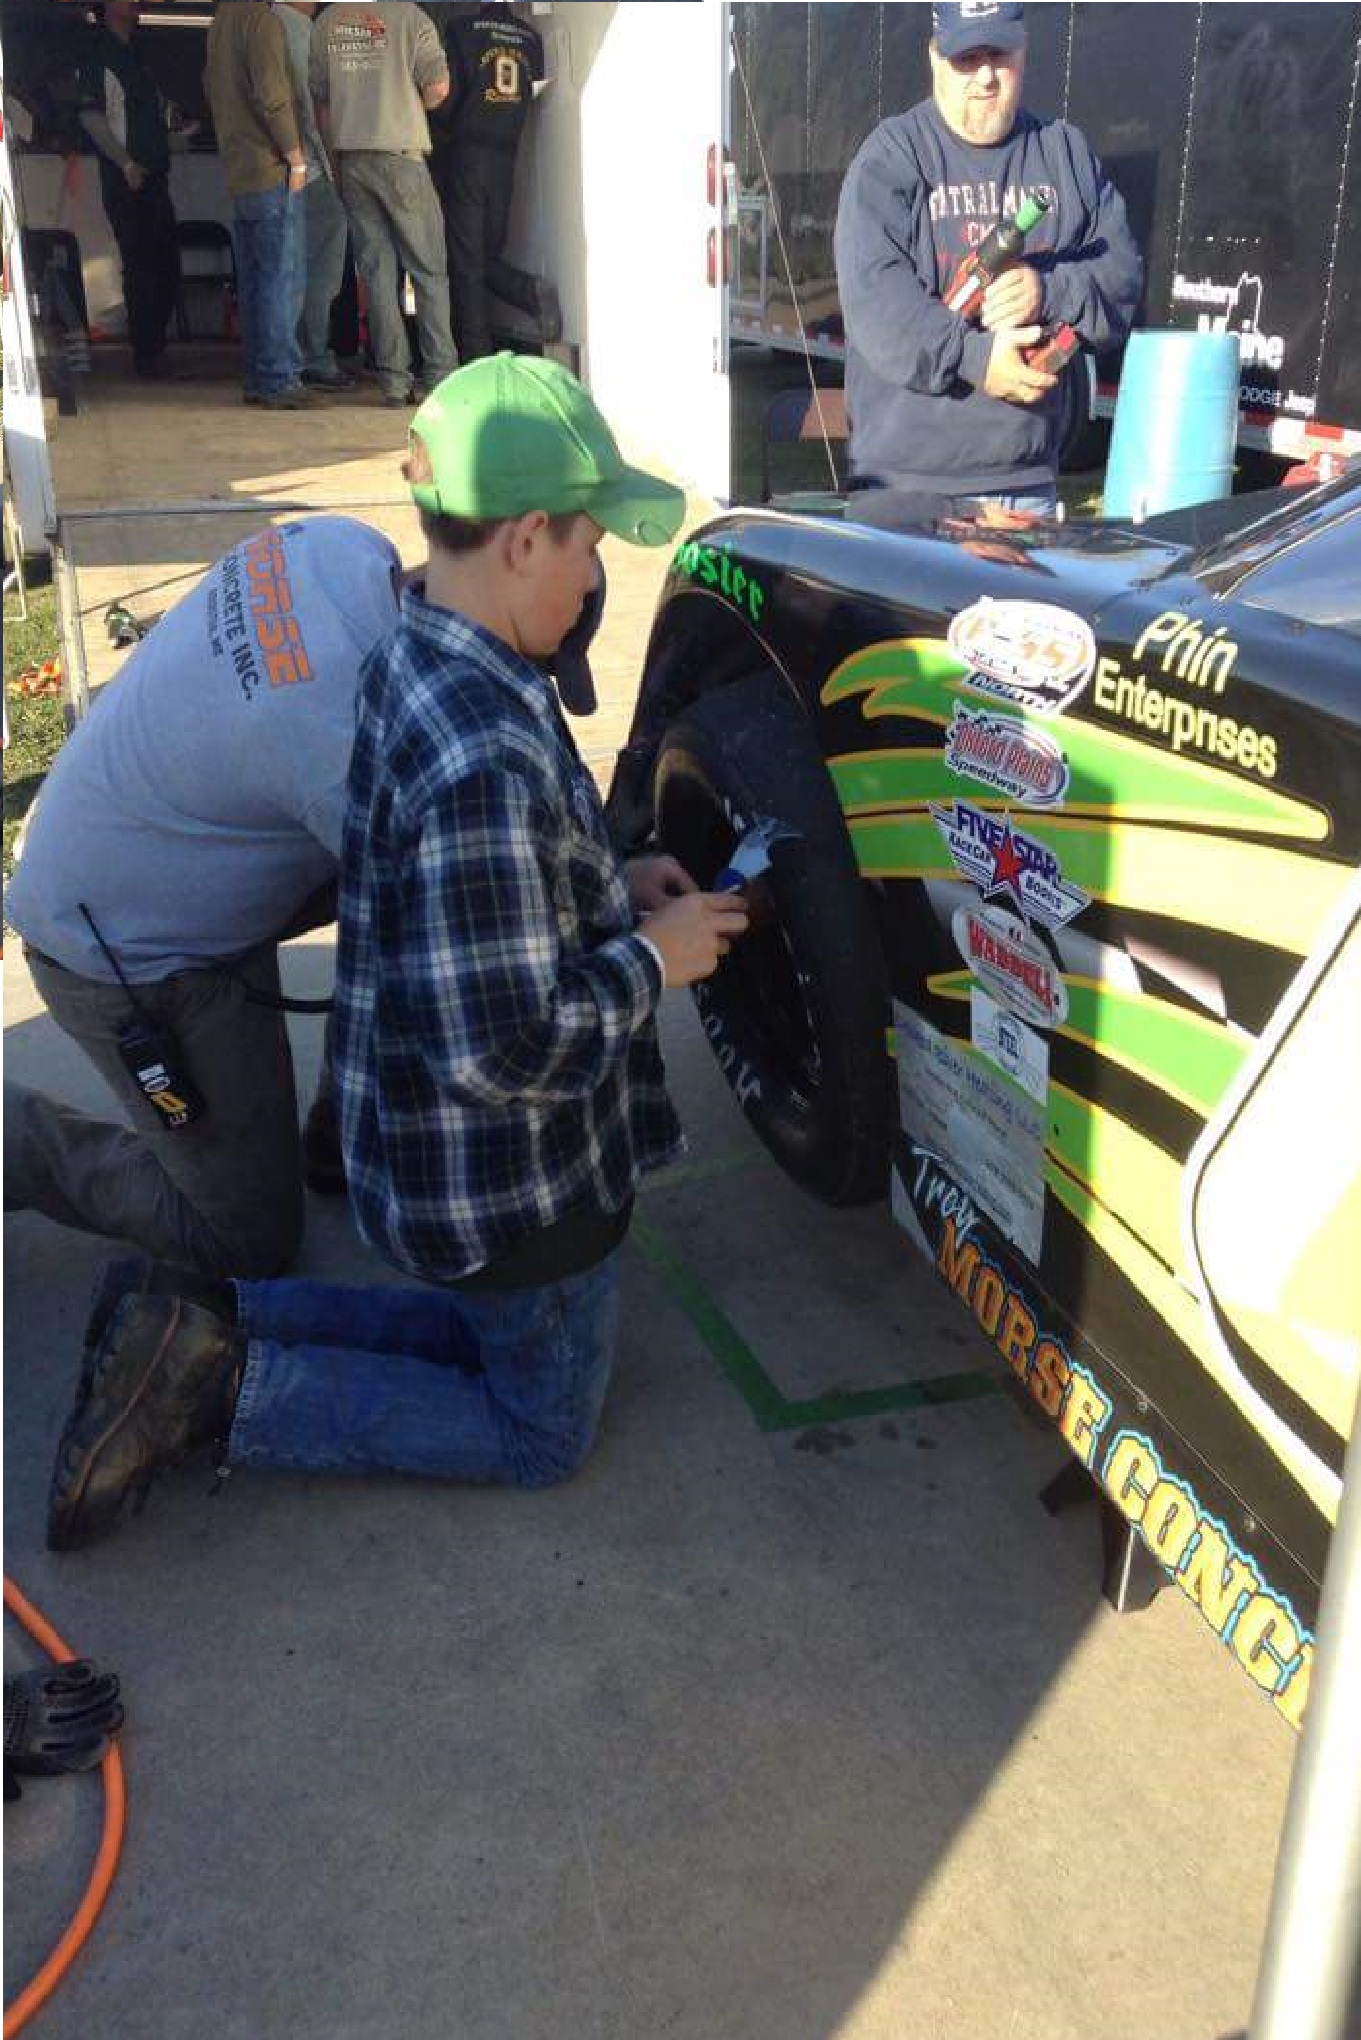 The students from Oxford Plains Middle School aren't afraid to get their hands dirty on the Aspire Higher Race Car at Oxford Plains Speedway.